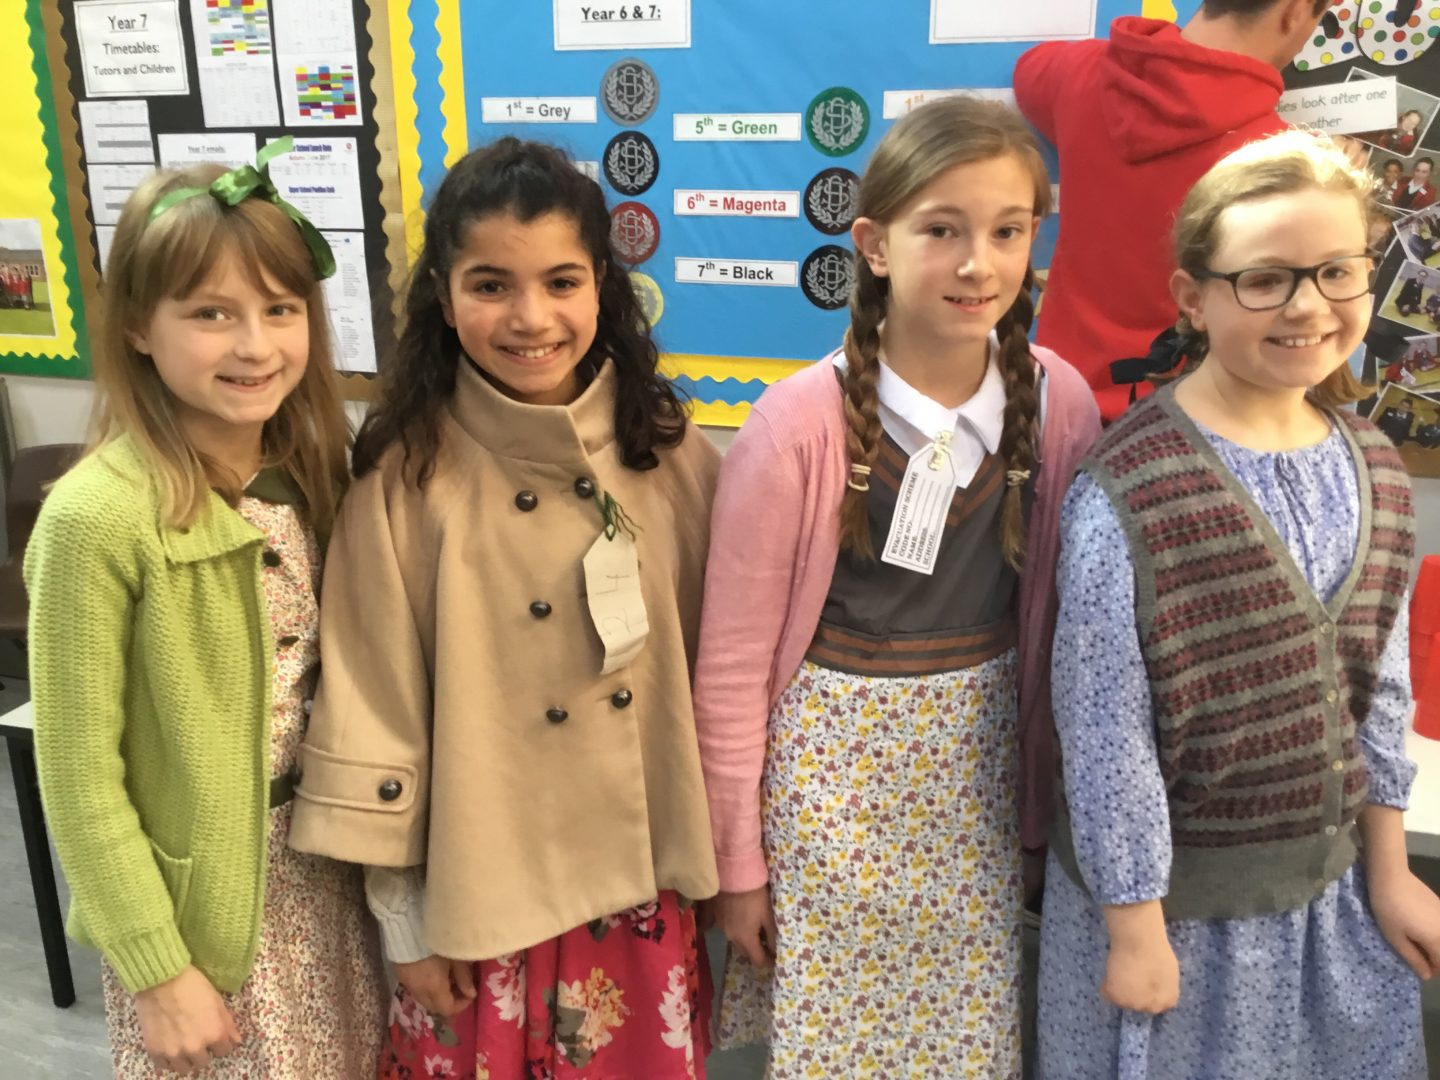 Downsend pupils dress up for themed school event